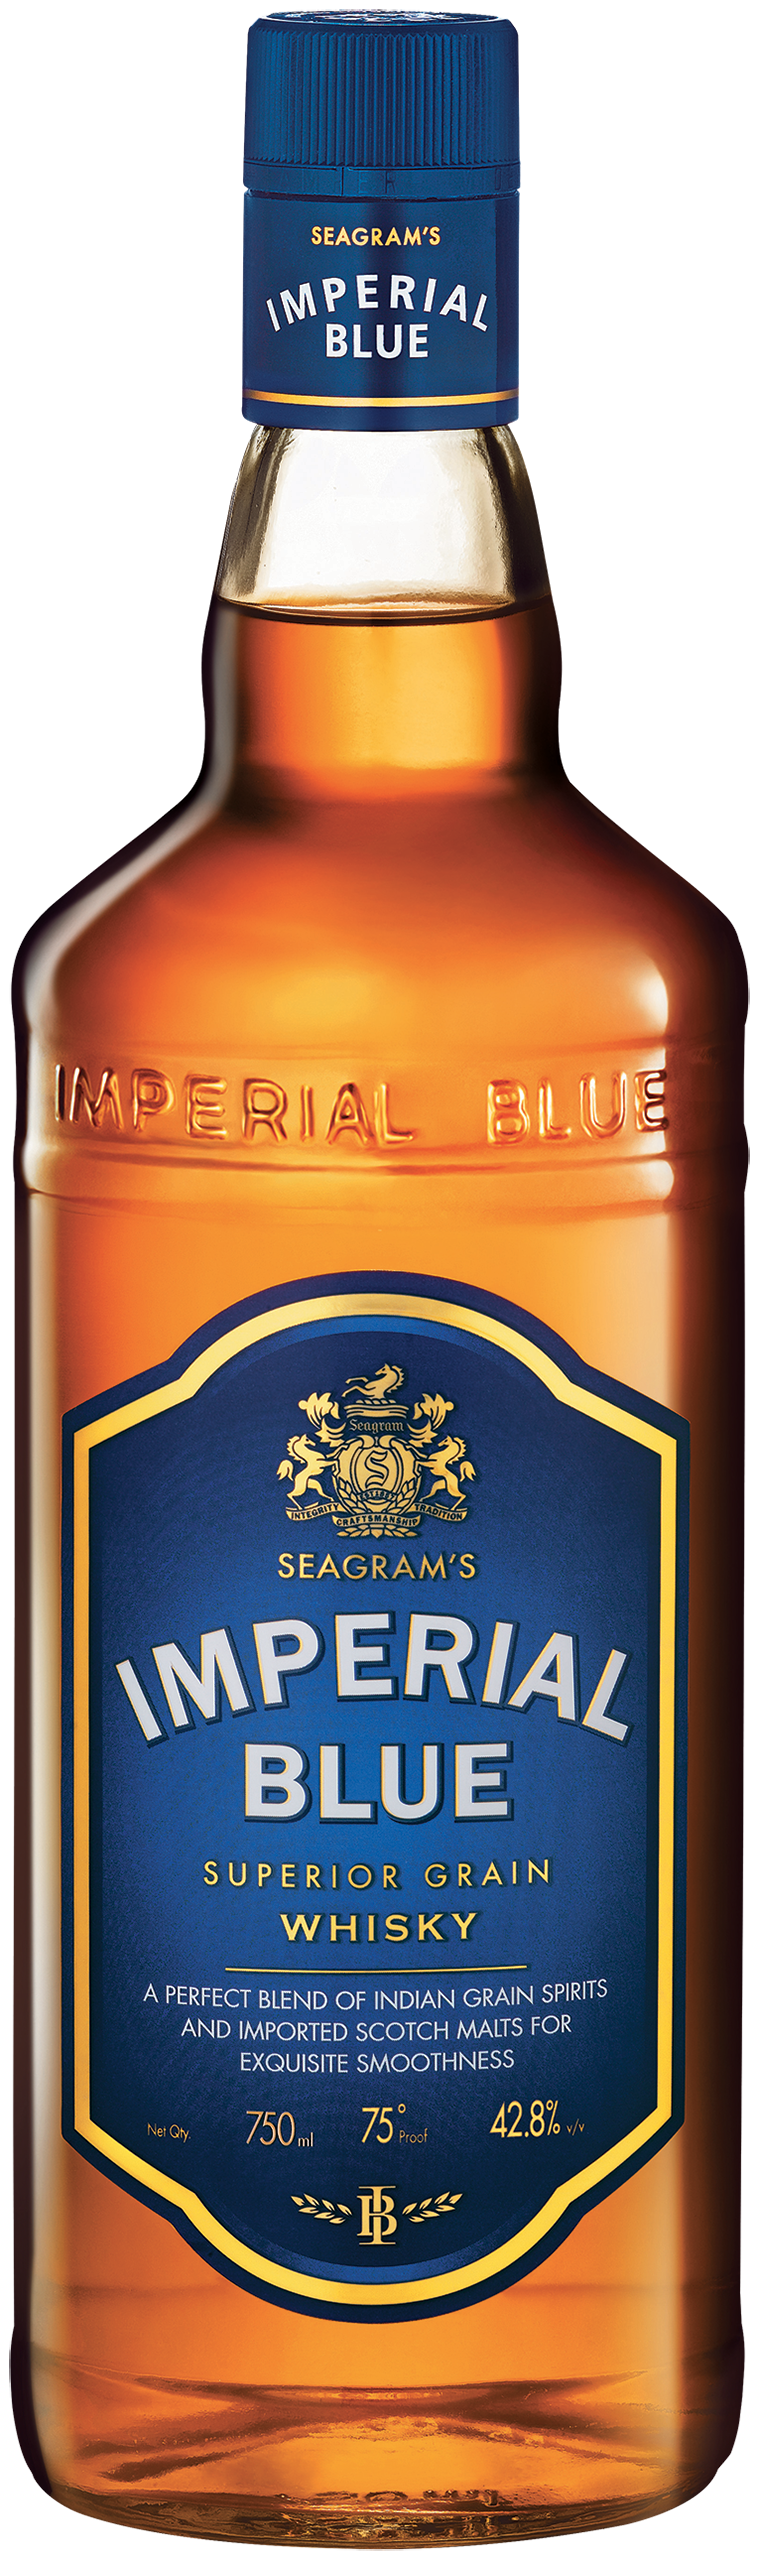 packshot imperial blue